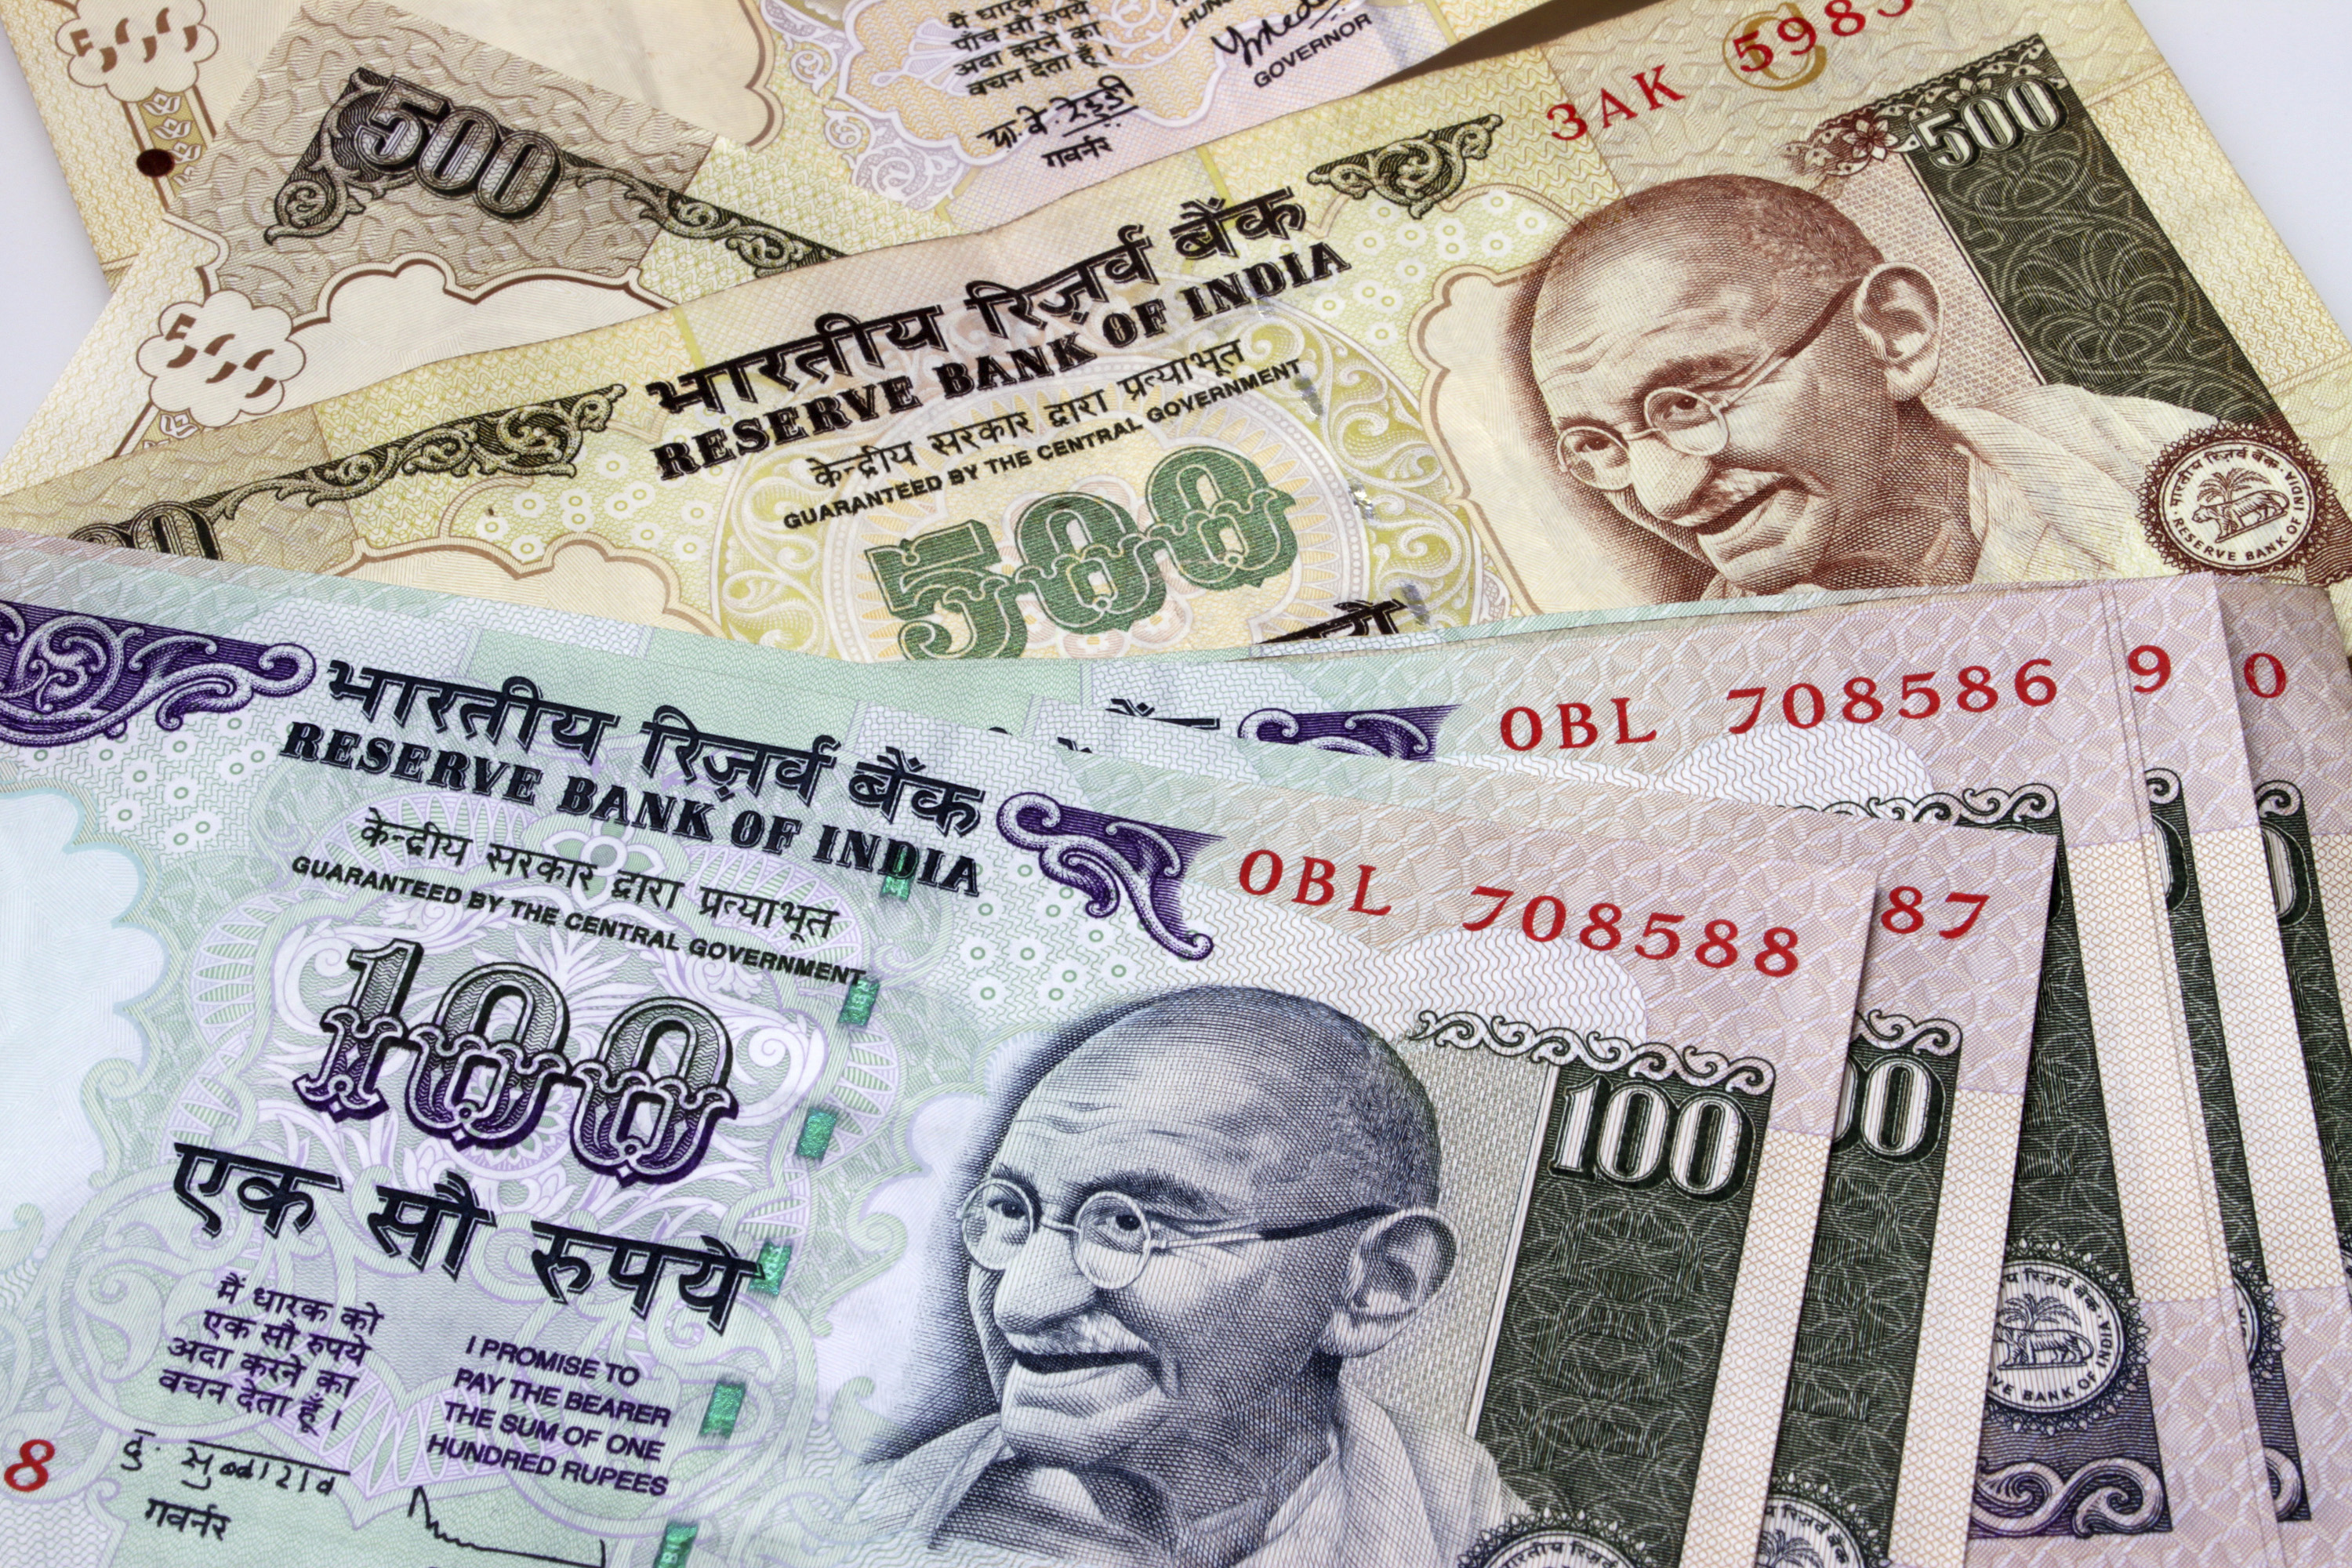 indian currency market Overview the indian rupee is the official currency of the republic of india, and is issued by the reserve bank of india the rupee is subdivided into 100 paise, although only a 50 paise coin is now issued as legal tender.